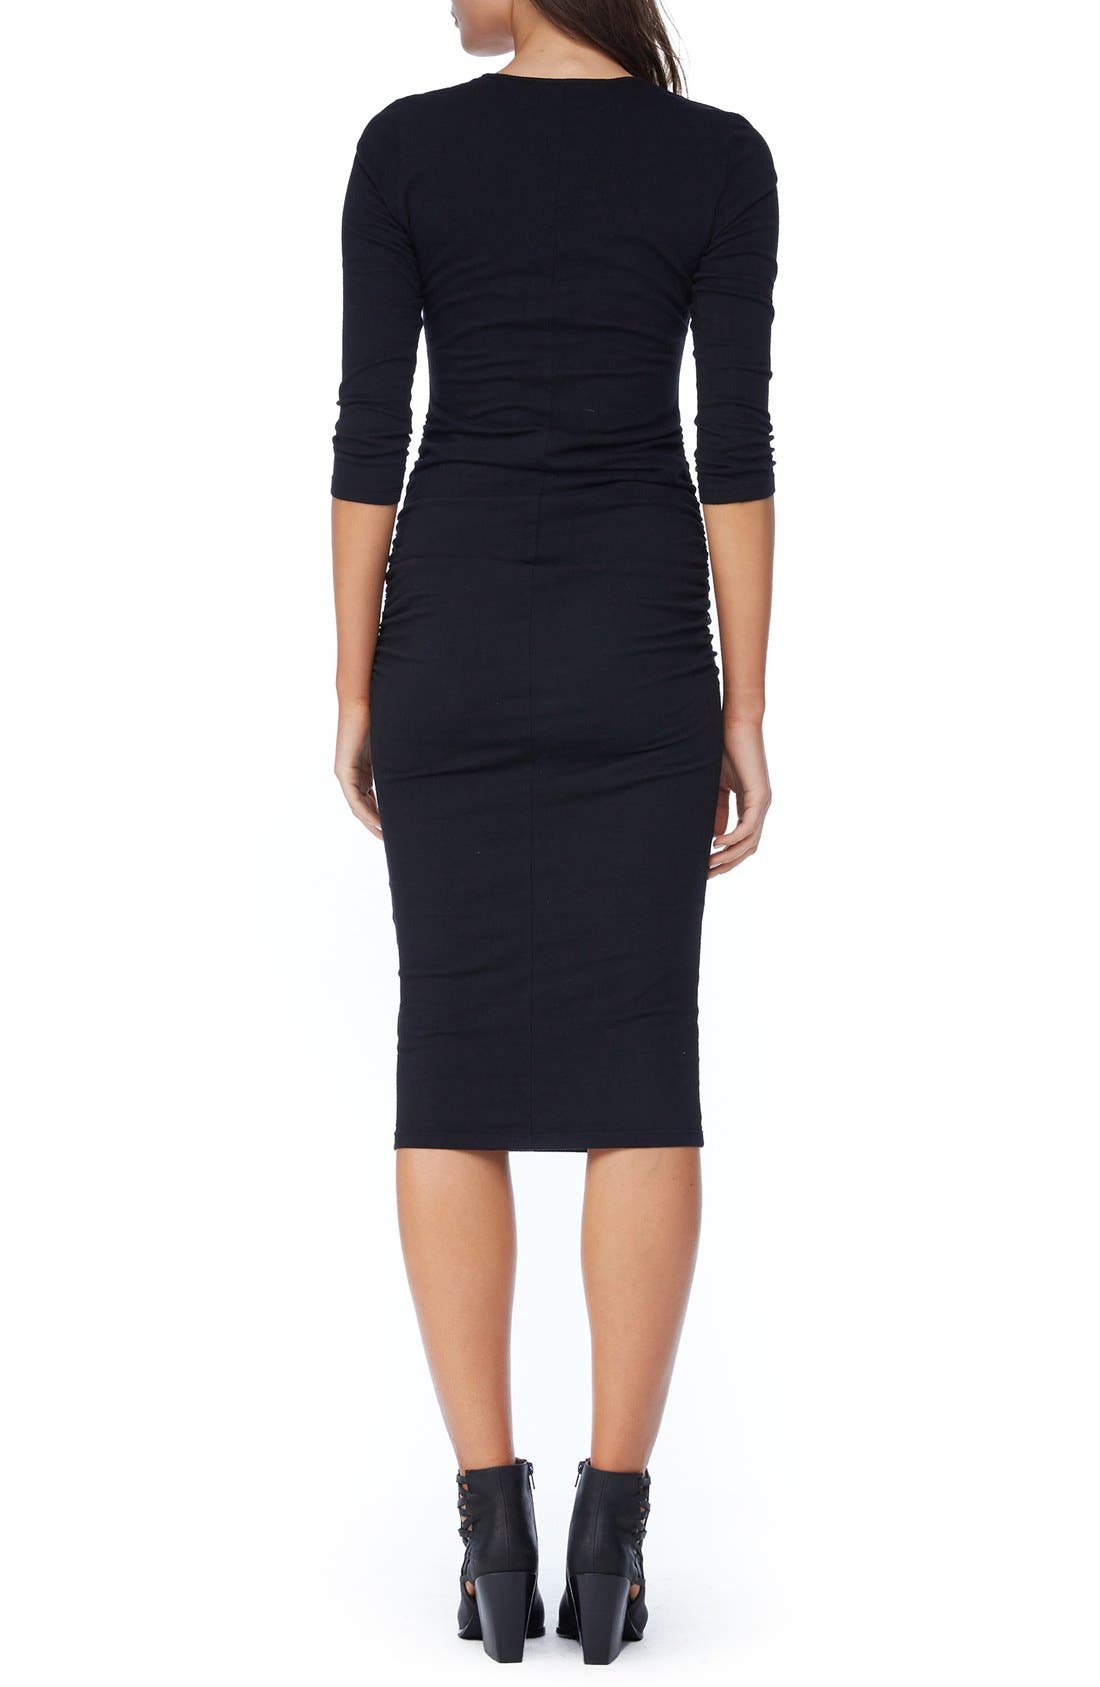 MICHAEL STARS, Ruched Midi Dress, Alternate thumbnail 2, color, BLACK